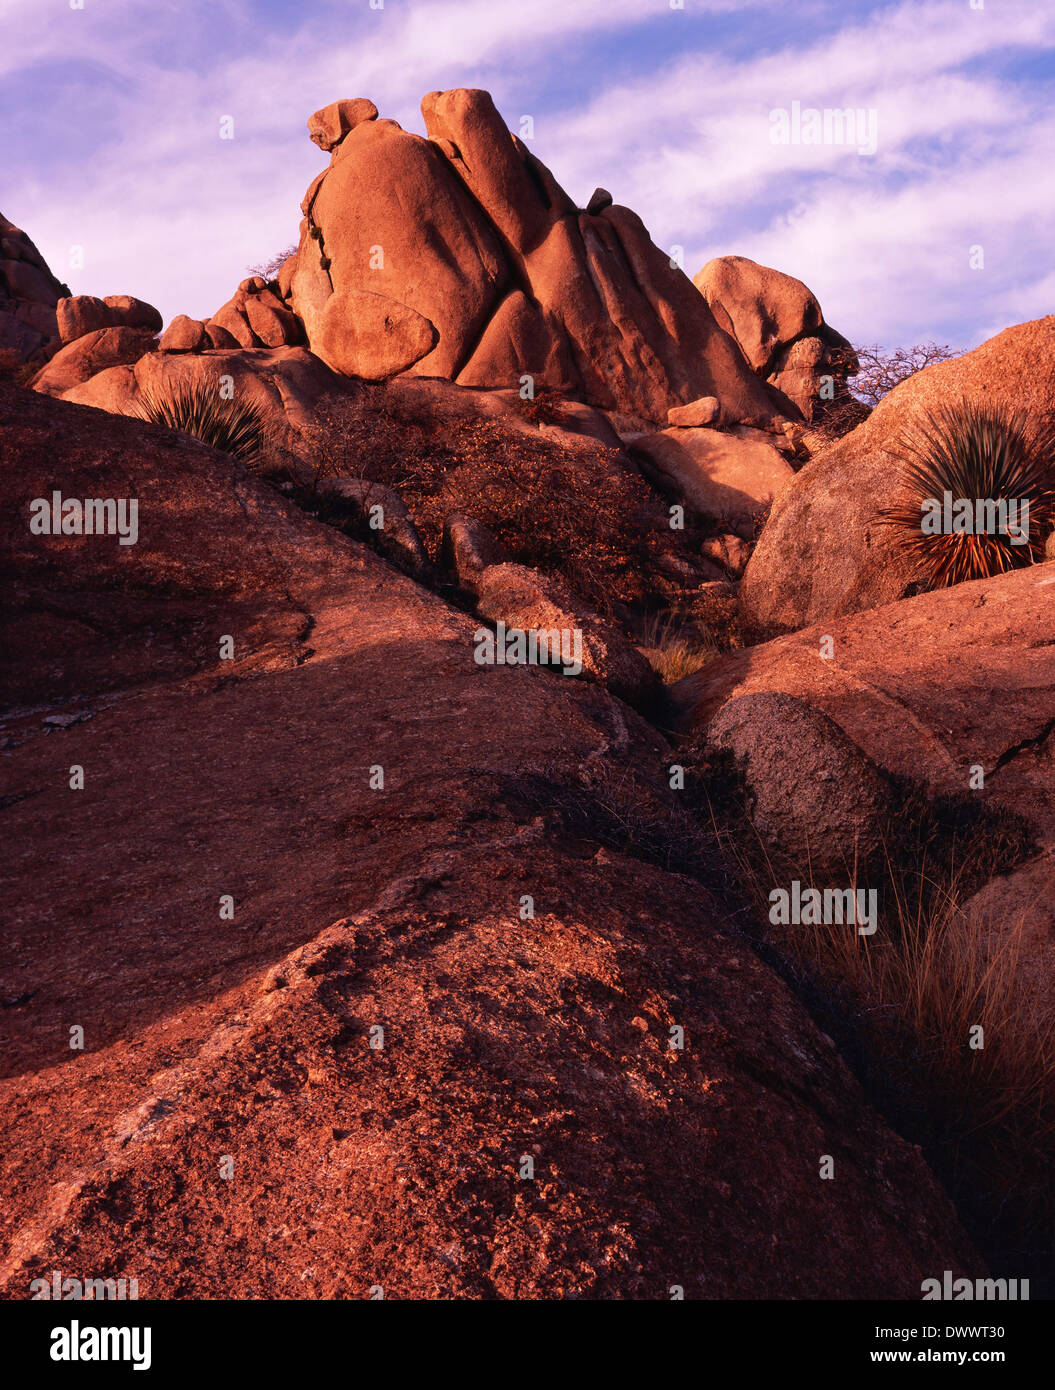 Reach For Clouds >> Boulders Reach For Clouds Stock Photo 67565204 Alamy